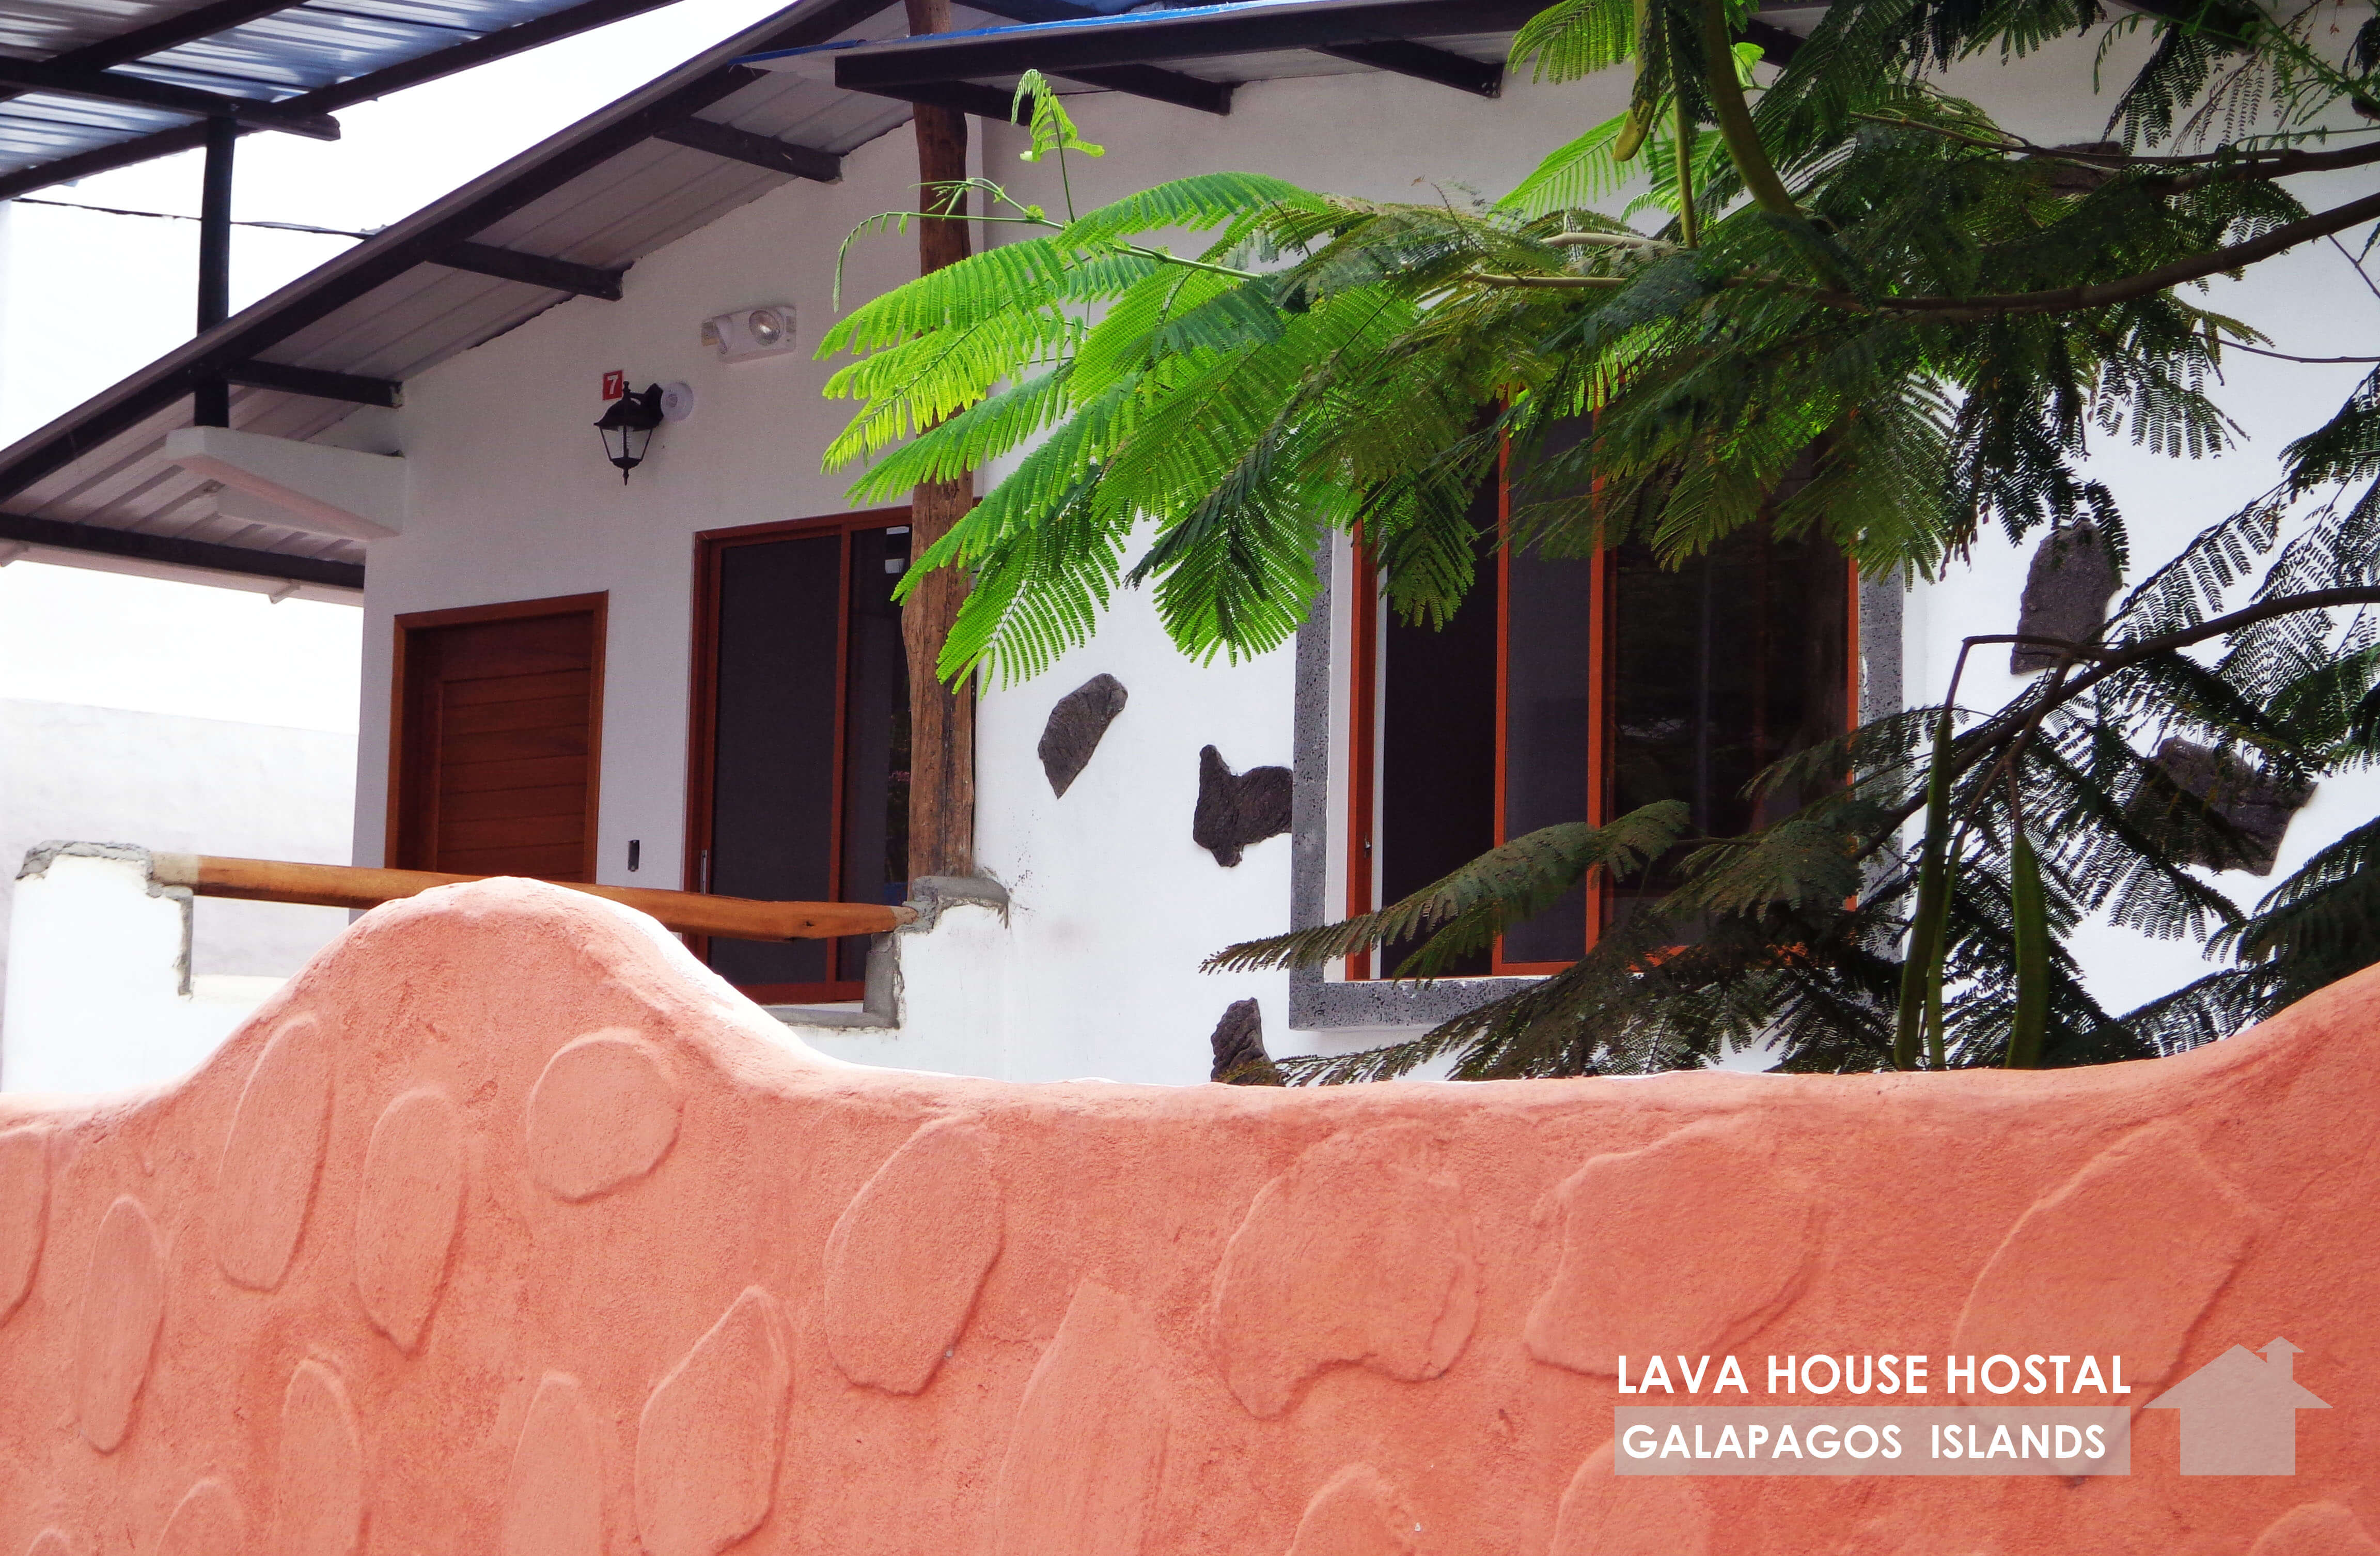 Lava House Hostal